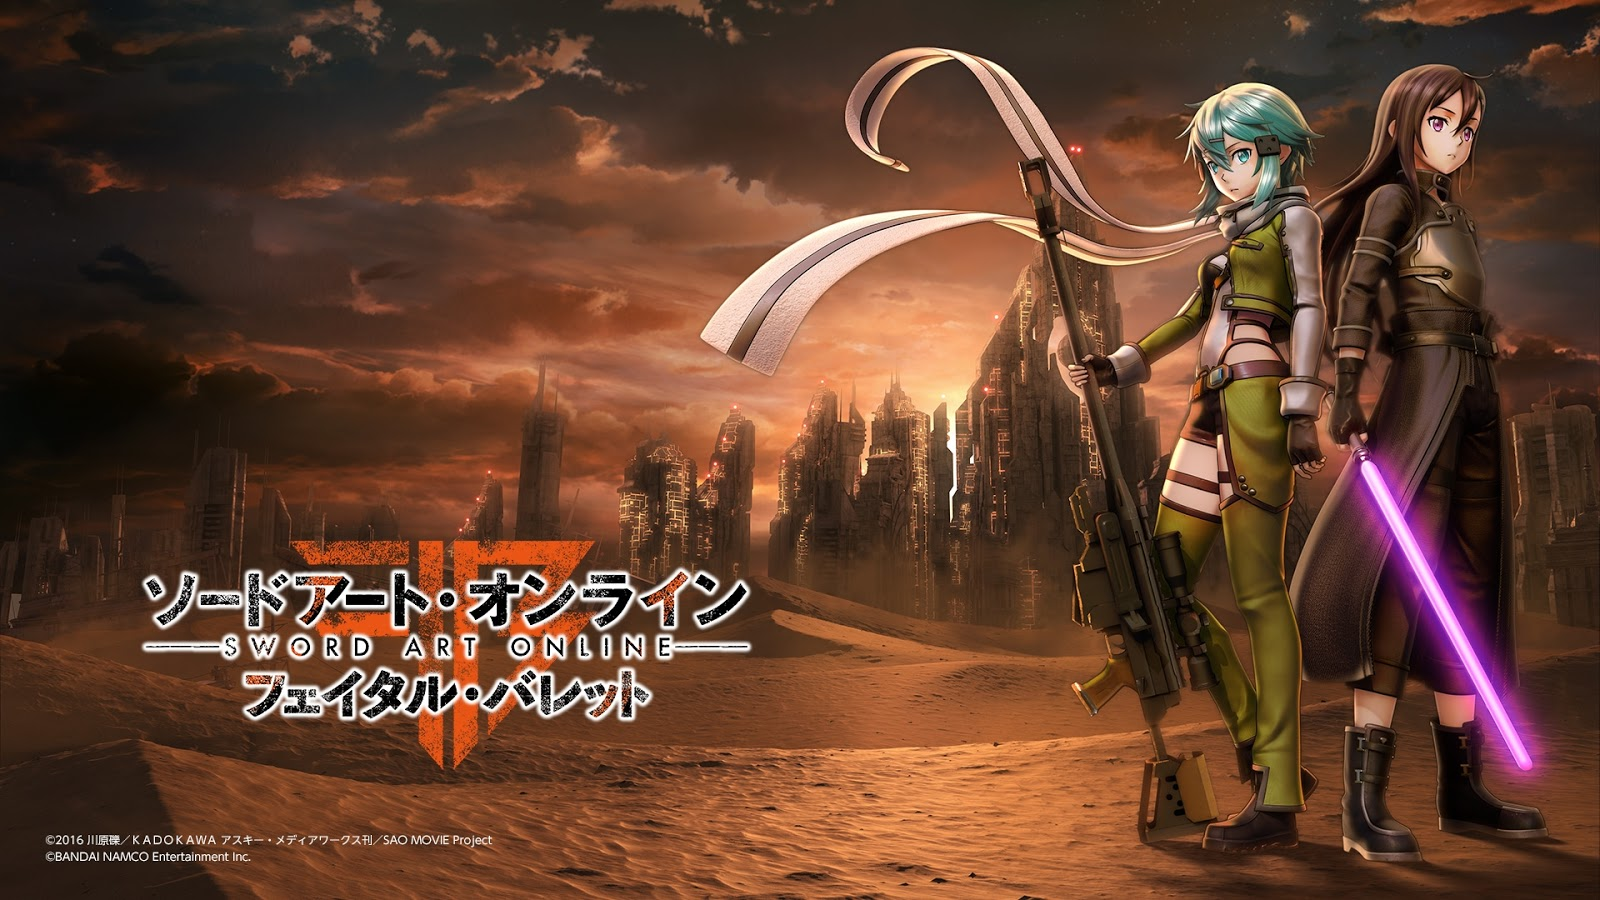 Great Wallpaper Movie Sword Art Online - Sword  Perfect Image Reference_162164.jpg